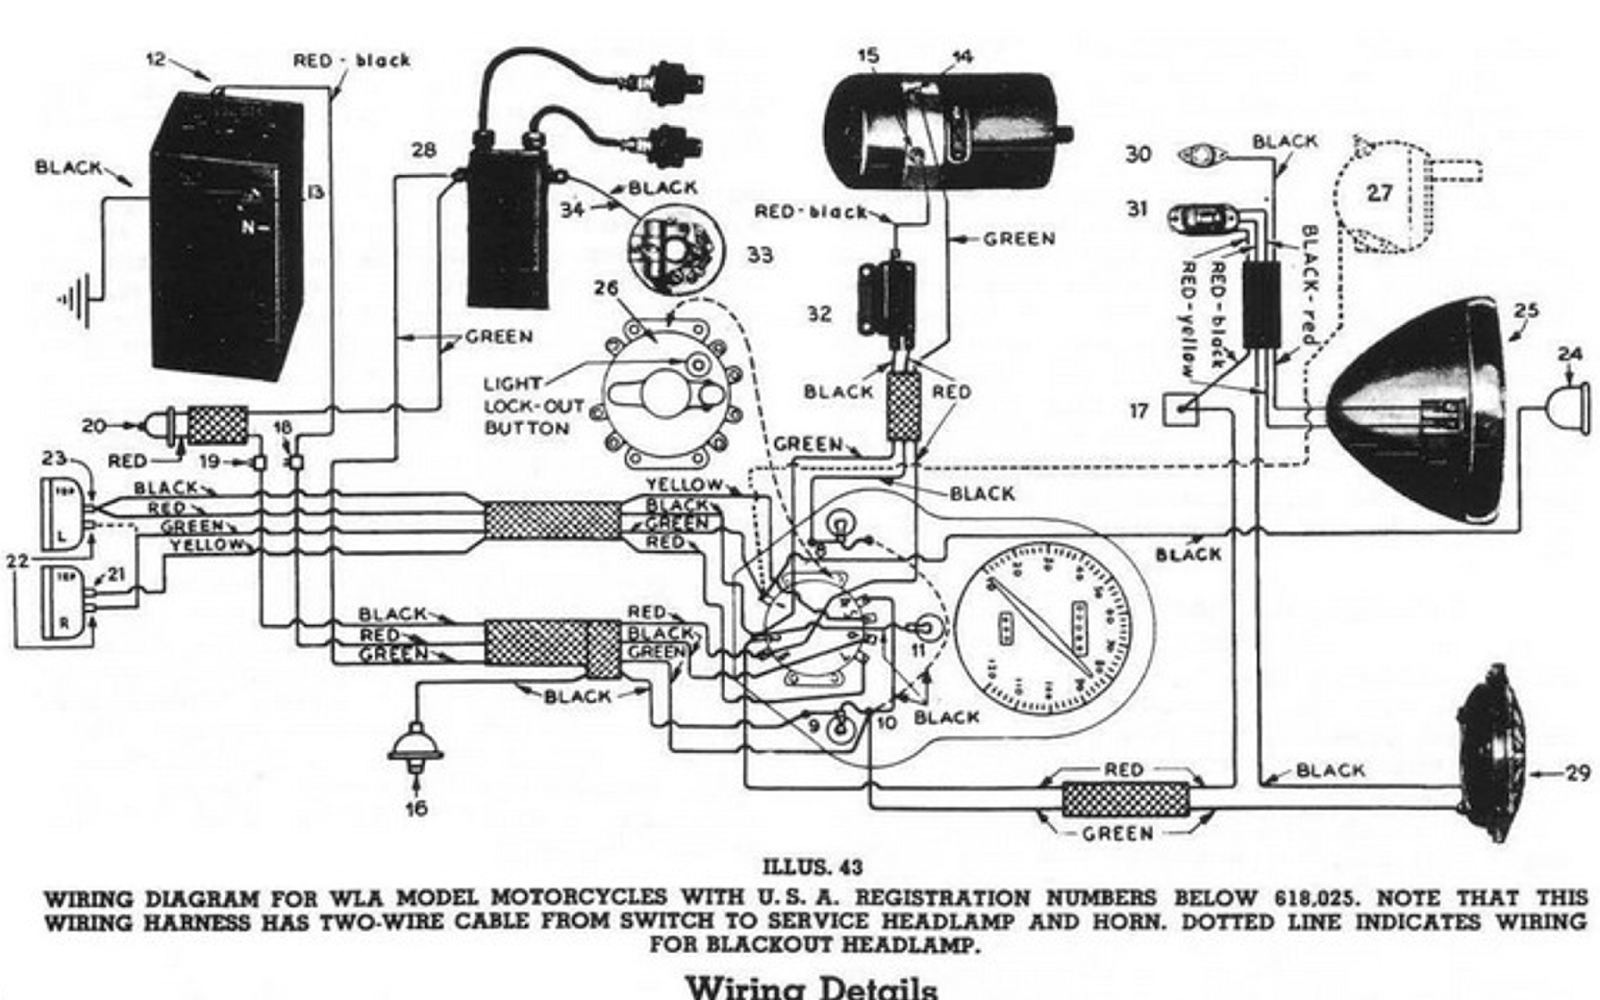 I have started re-wiring the Harley. Here is a wiring diagram from the WLA  Manual (for early models).